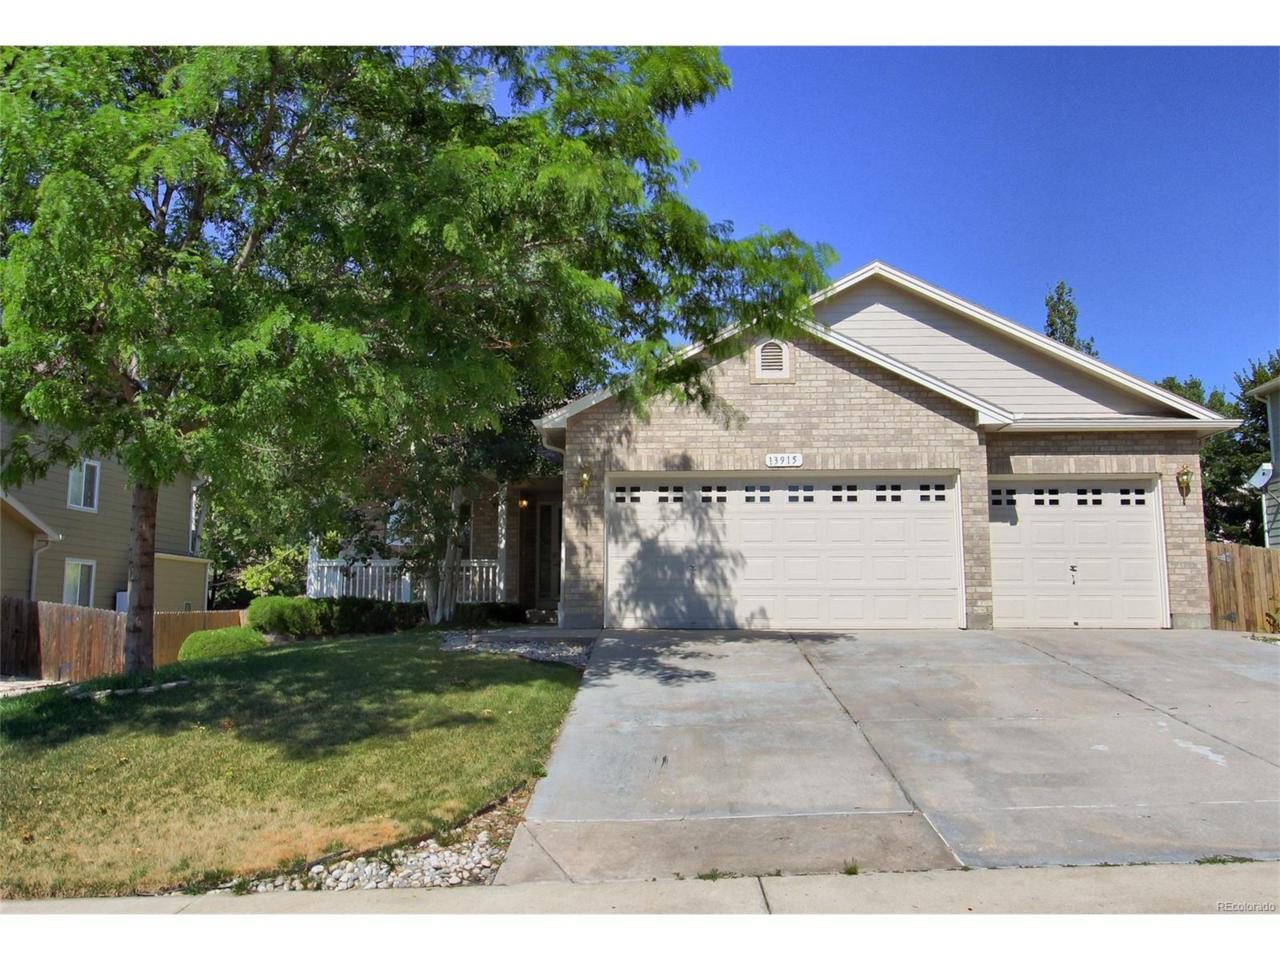 13915 Fairfax Street, Thornton, CO 80602 (MLS #7293053) :: 8z Real Estate